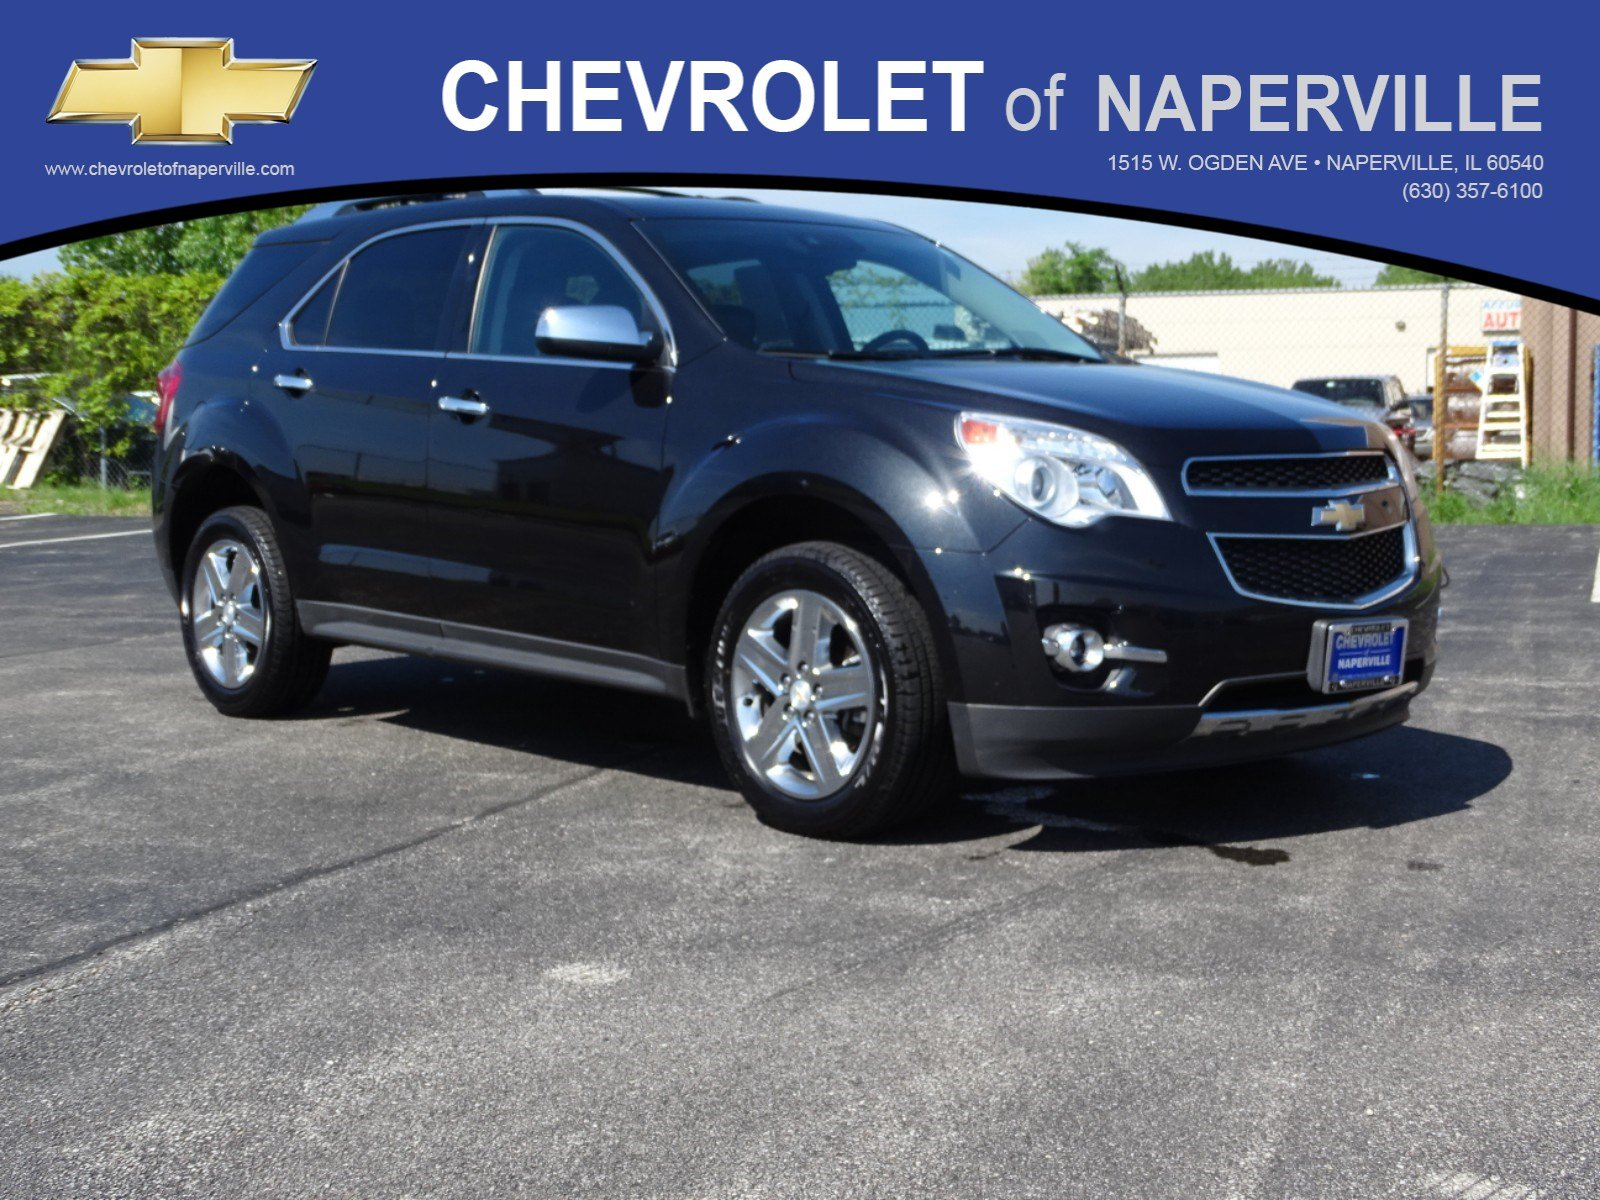 equinox review automotivetimes ltz chevy com chevrolet